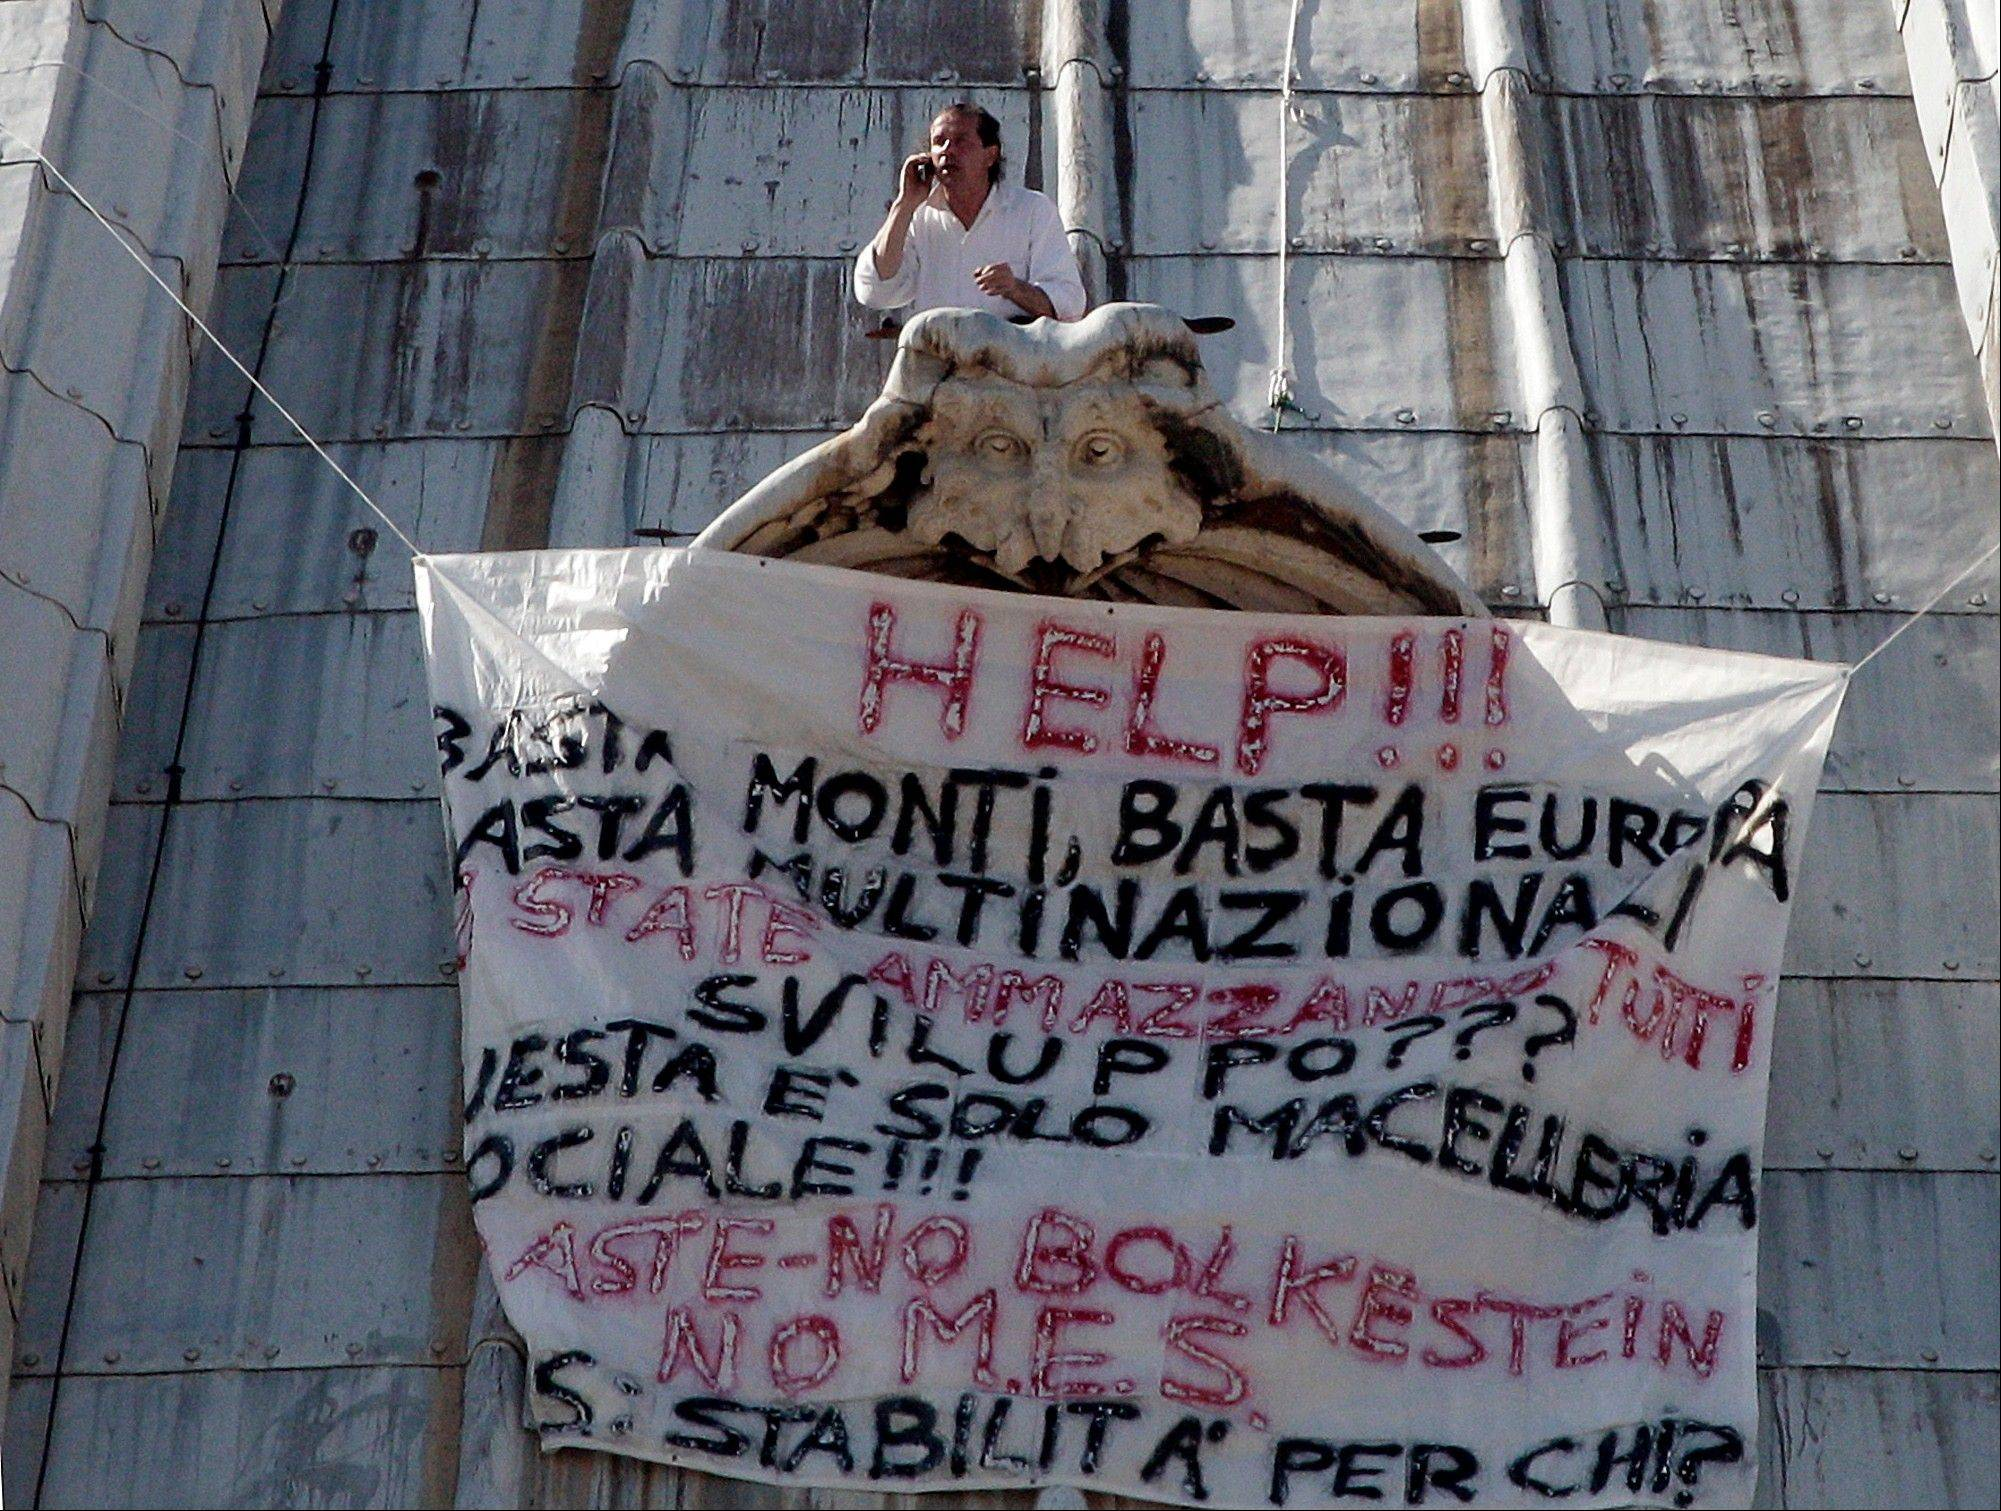 Italian businessman Marcello di Finizio gave up his protest atop the St. Peter�s Basilica on Wednesday evening, after more than 24 hours perched on the 426-foot dome to demonstrate against government reforms. His banner in Italian reads:�Help!! Enough Monti (Italian Premier Mario Monti), enough Europe, enough multinationals, you are killing all of us. Development?? This is a social butchery!!�